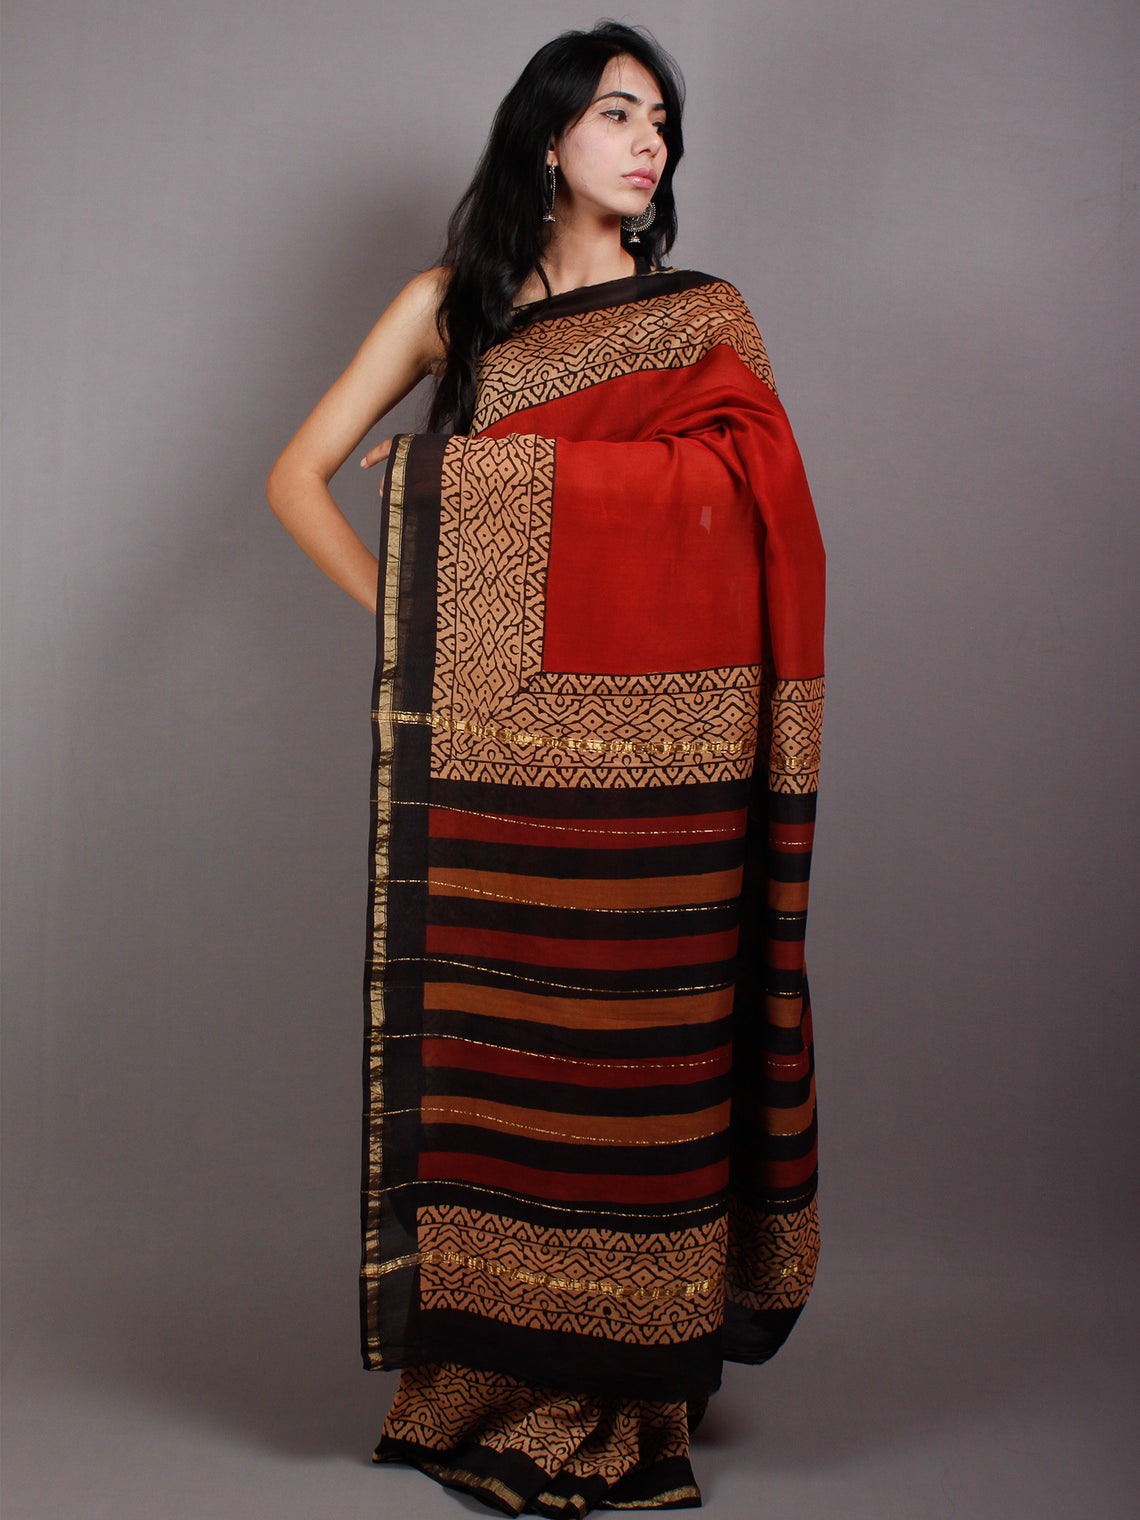 Maroon Black Beige Hand Block Printed & Painted in Natural Vegetable Colors Chanderi Saree - S03170540